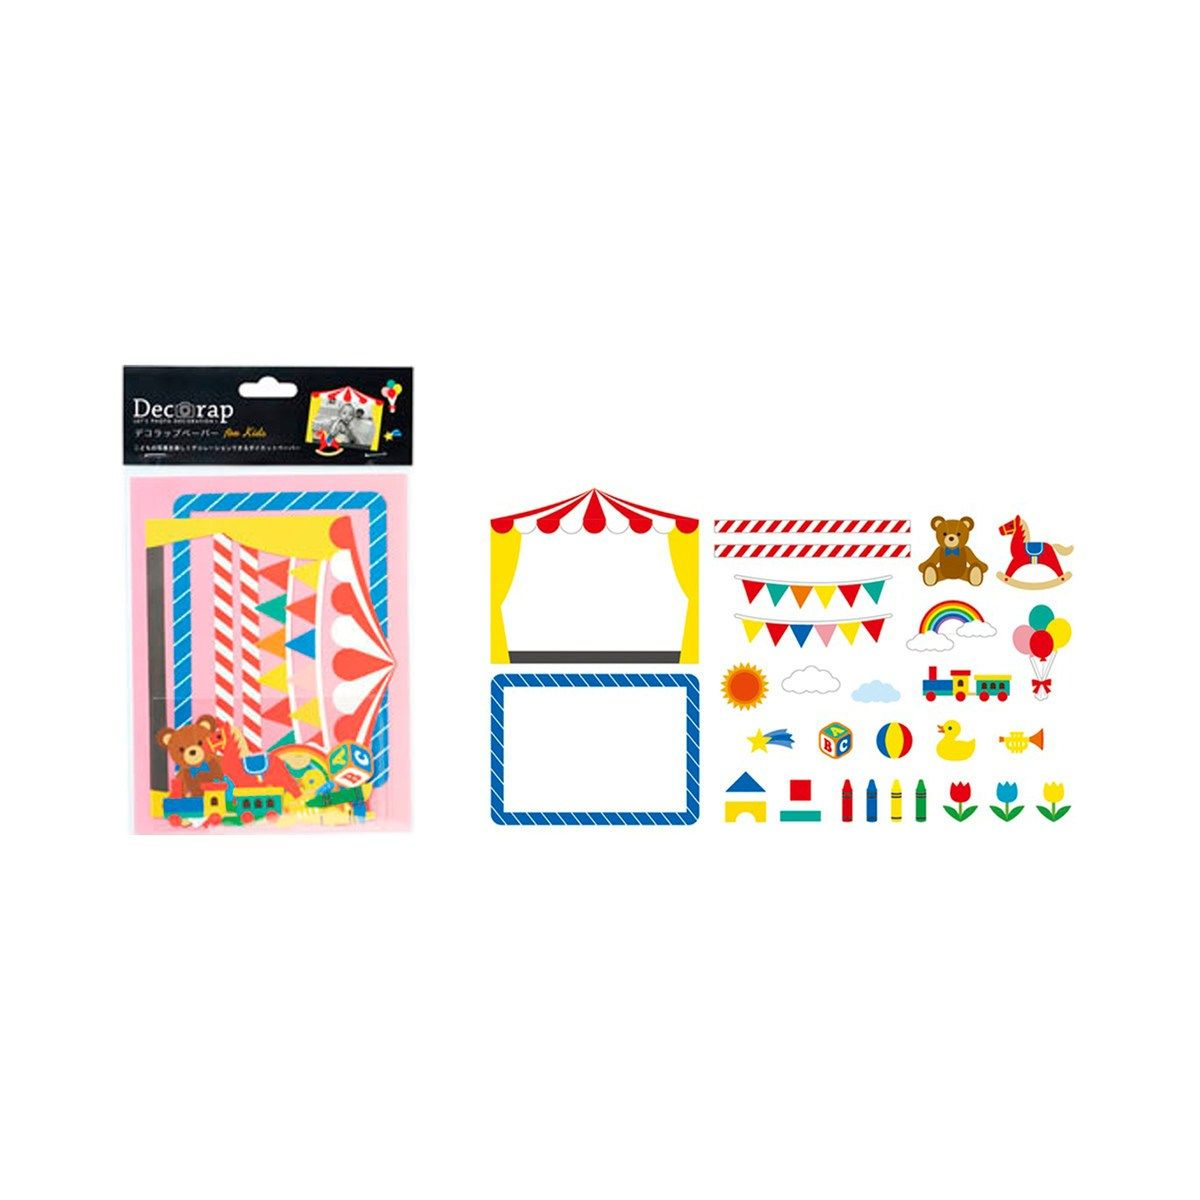 DECORAP KIT DE PAPEL DECORATIVO INFANTIL